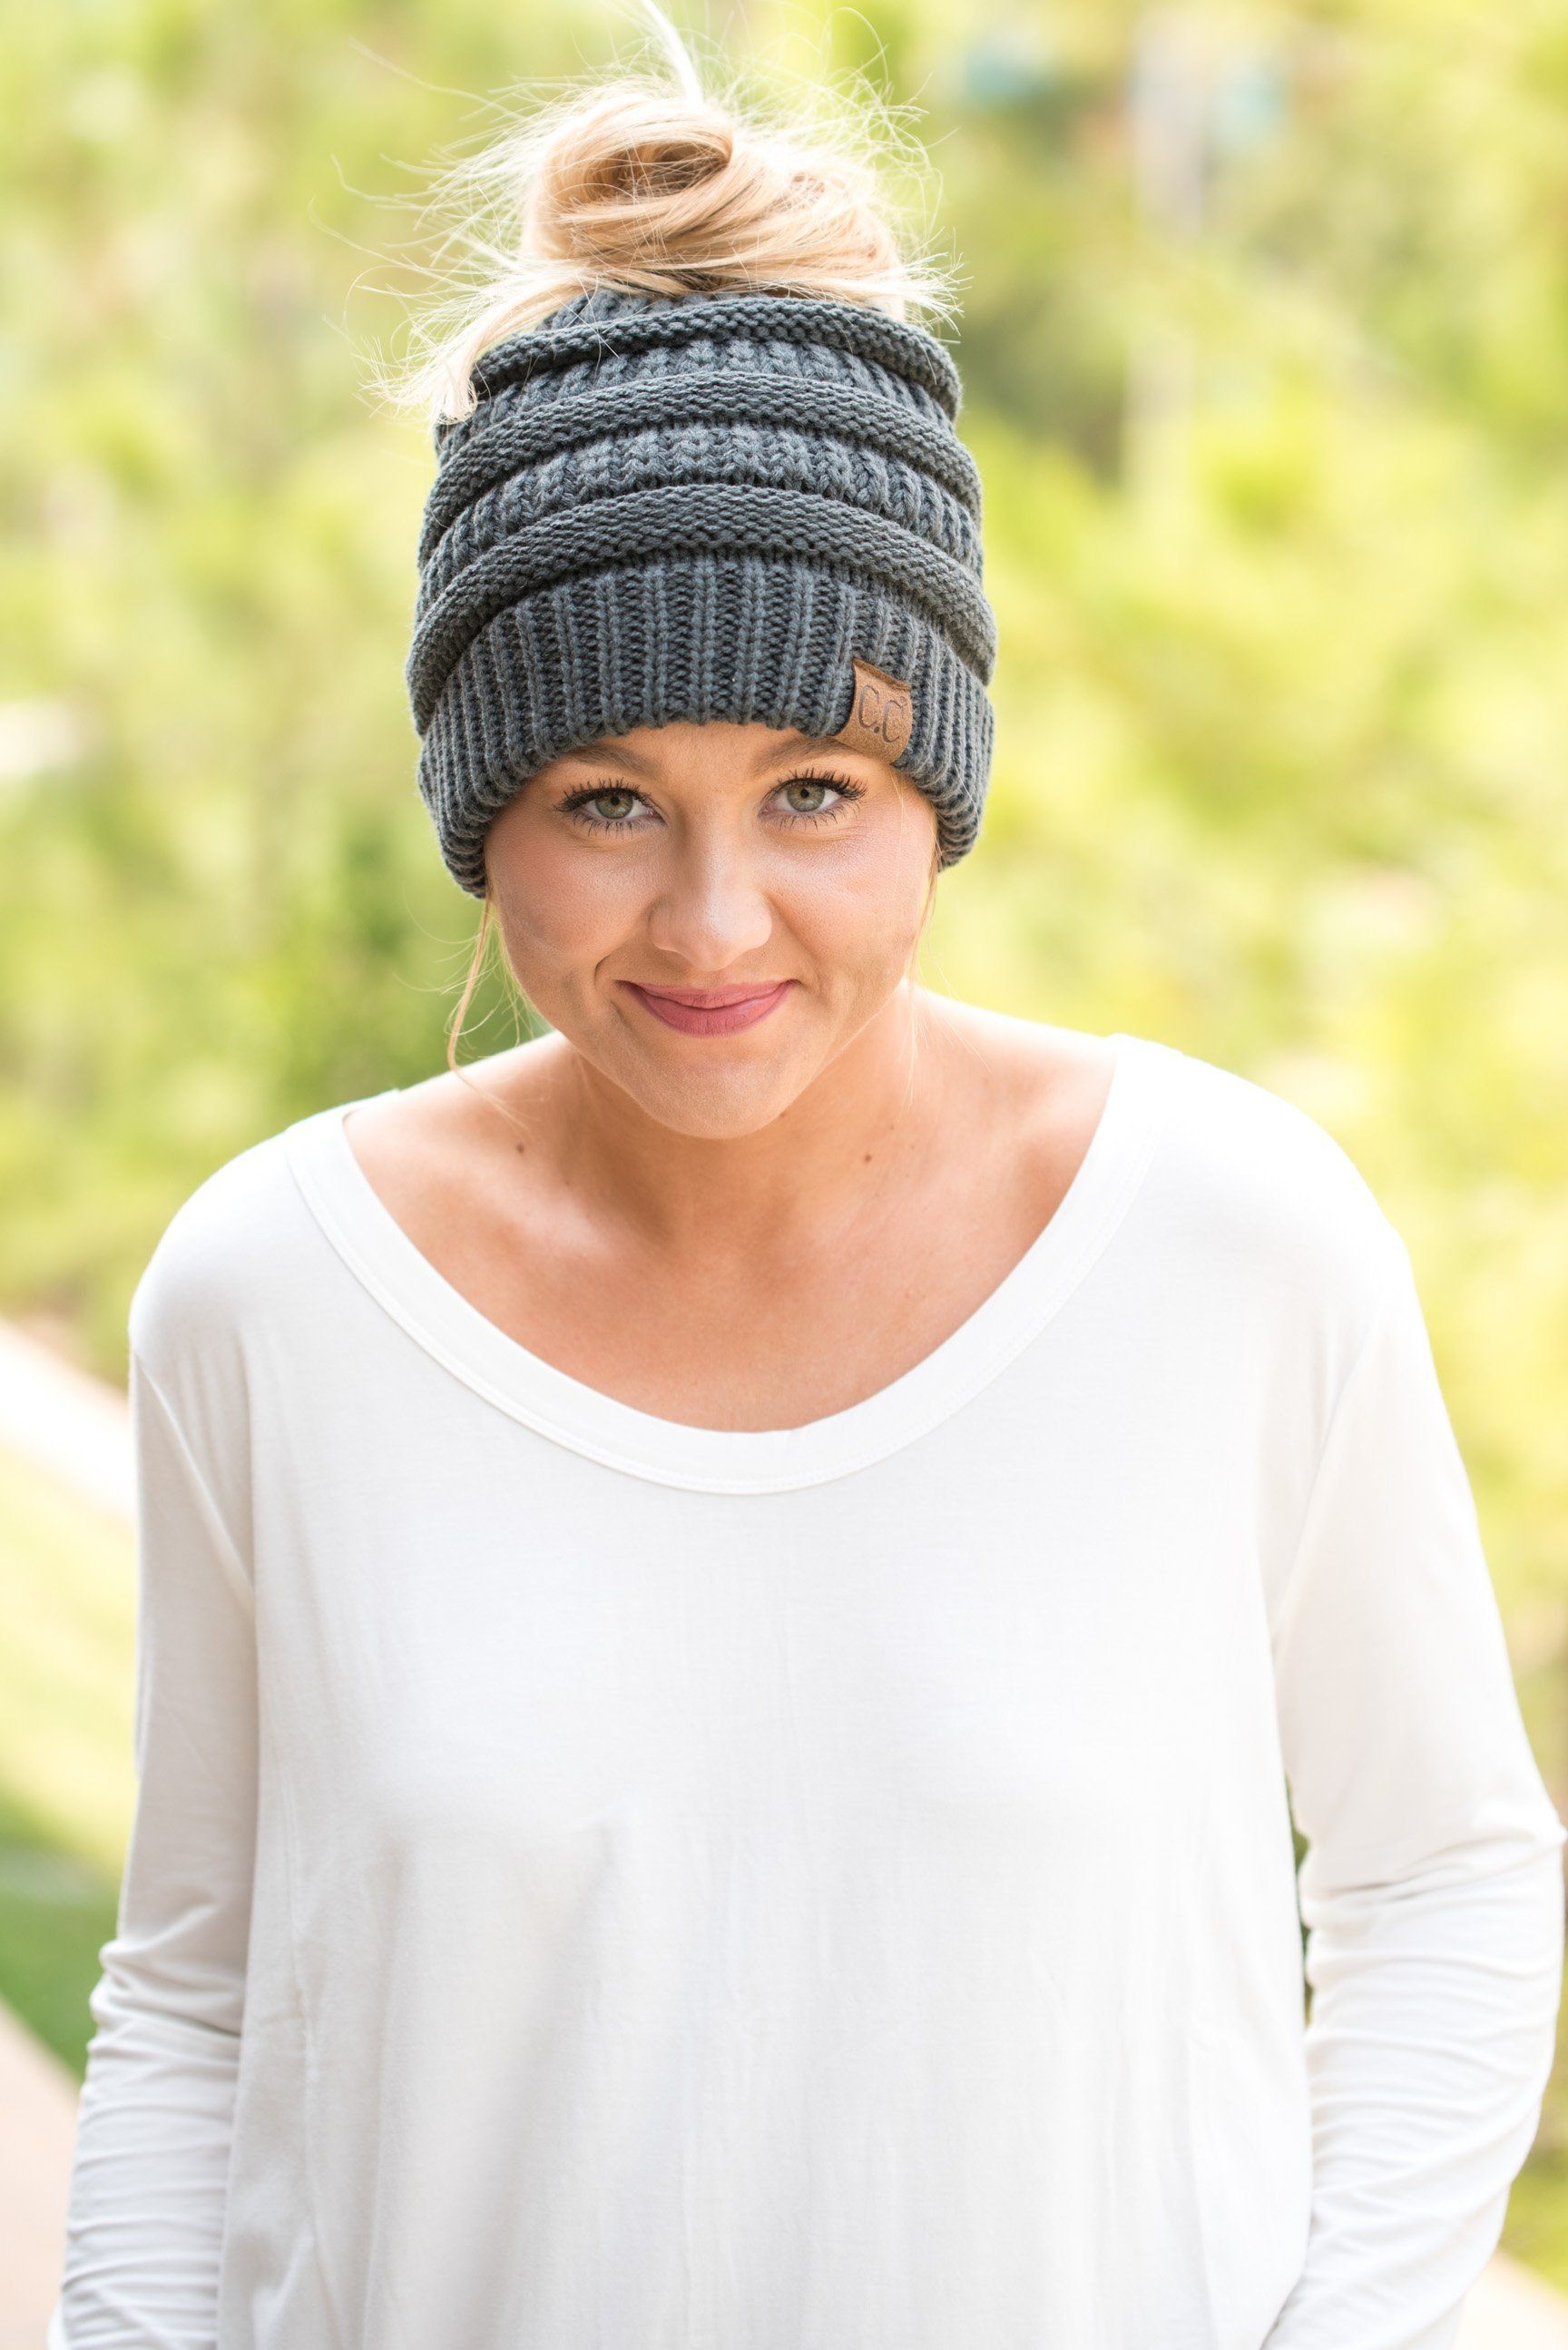 f4a0835ab7f CC solid messy bun beanie dark mel grey from Lush Fashion Lounge